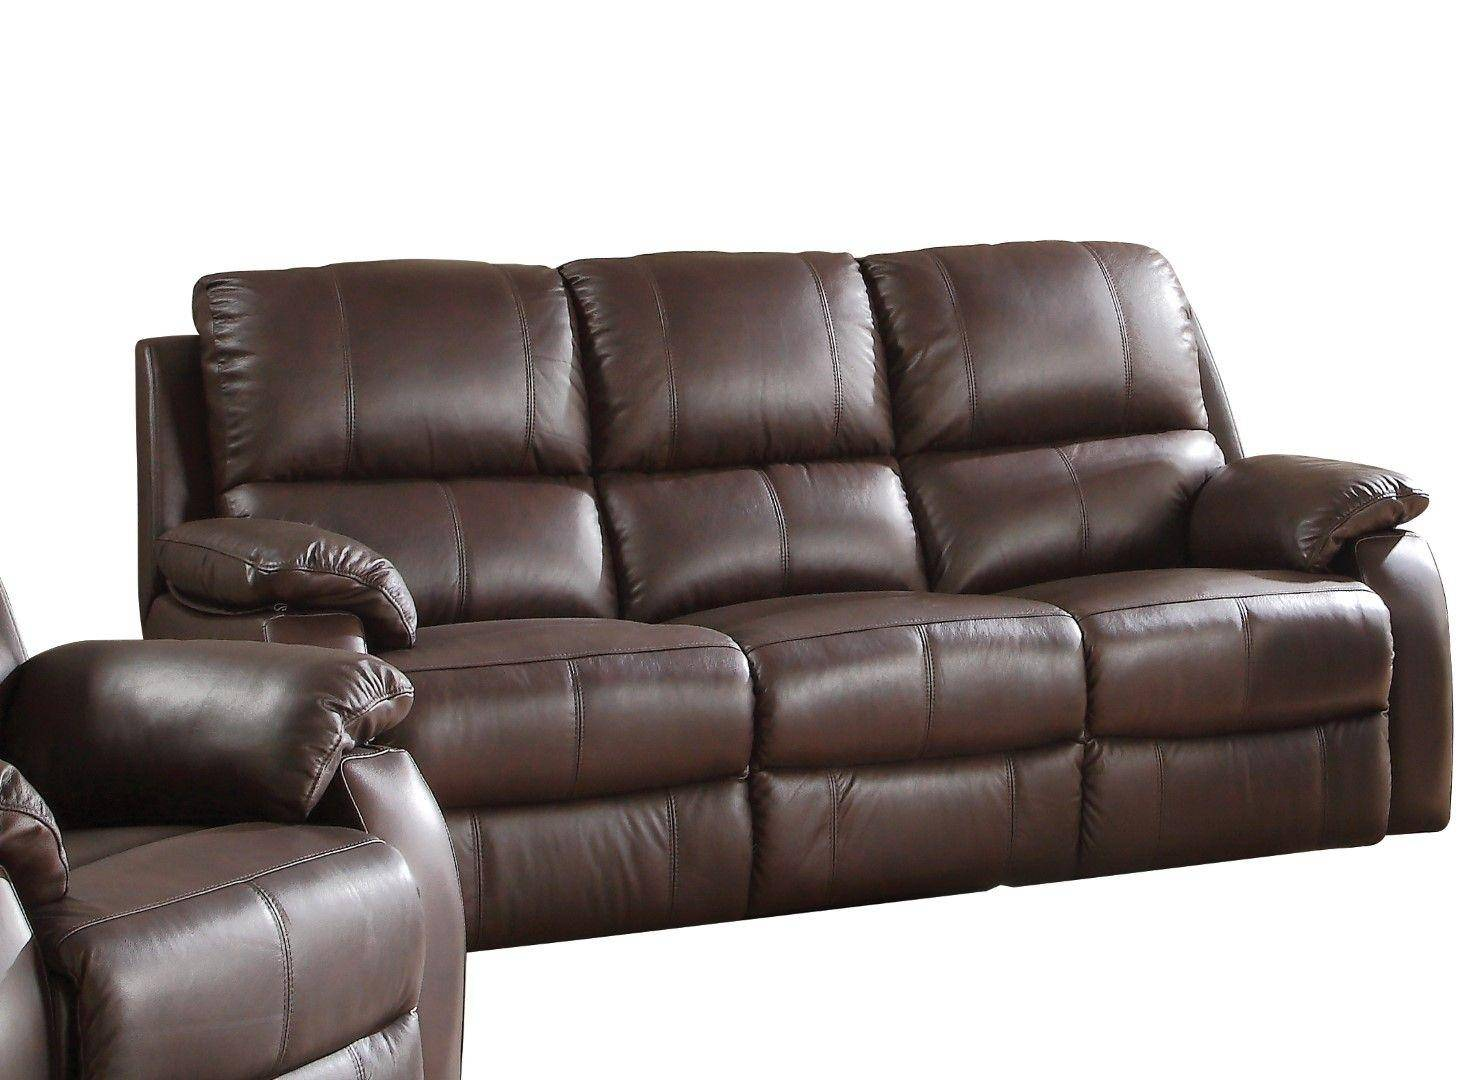 Groovy Dark Brown Bonded Leather Reclining Sofa Loveseat Acme Caraccident5 Cool Chair Designs And Ideas Caraccident5Info